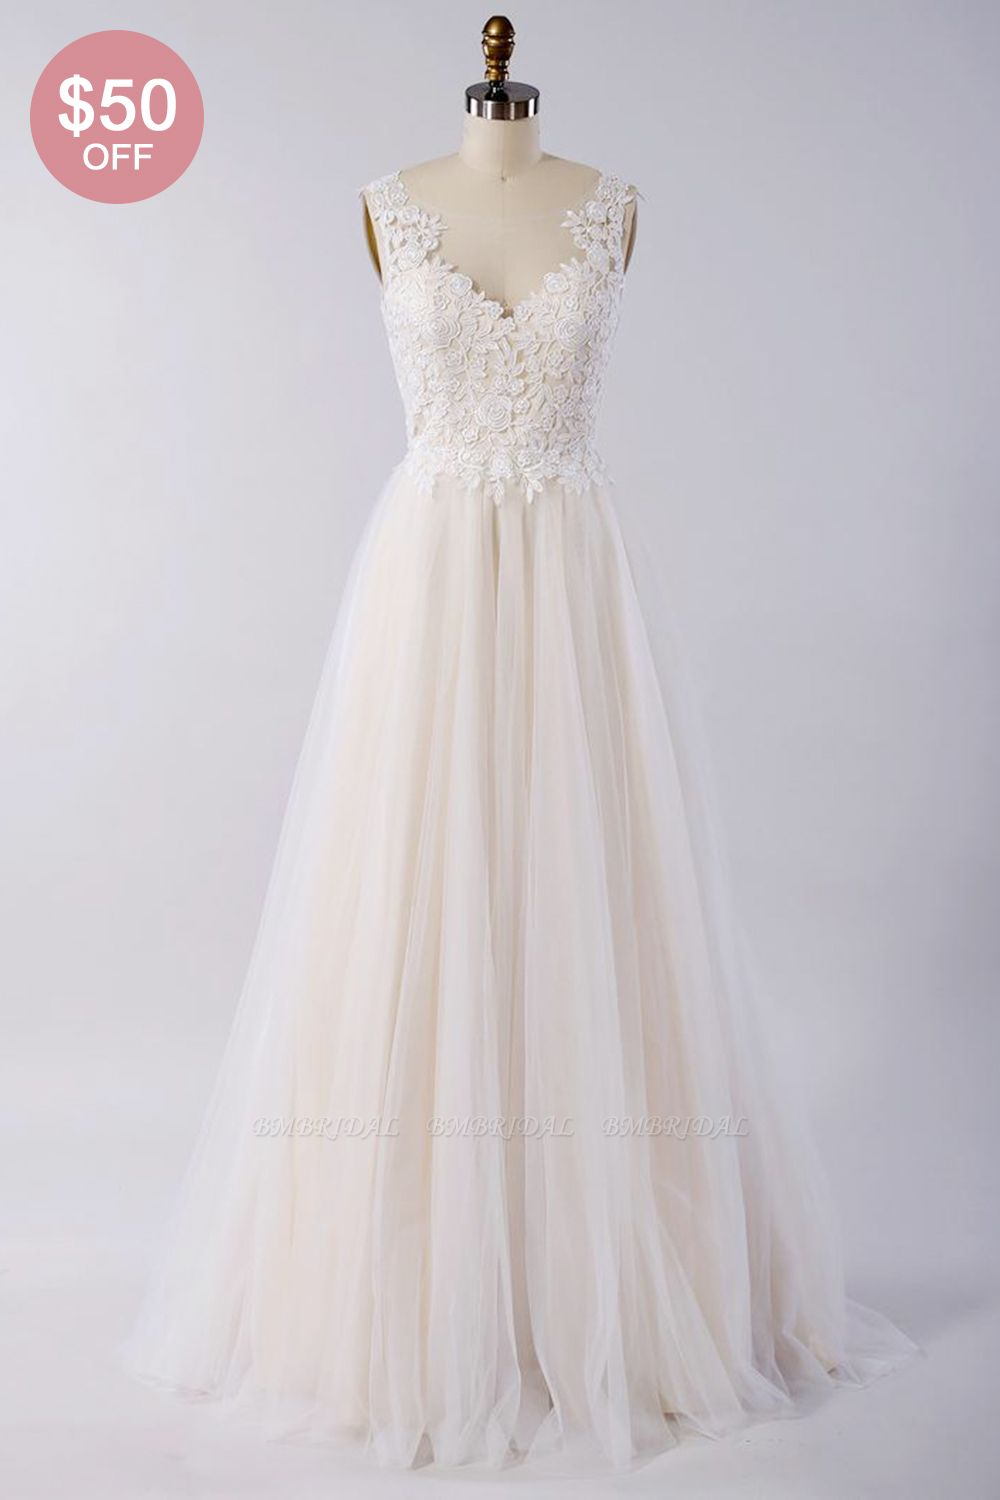 BMbridal Stylish V-neck Straps Tulle Wedding Dress Appliques A-line Ruffles Bridal Gowns On Sale